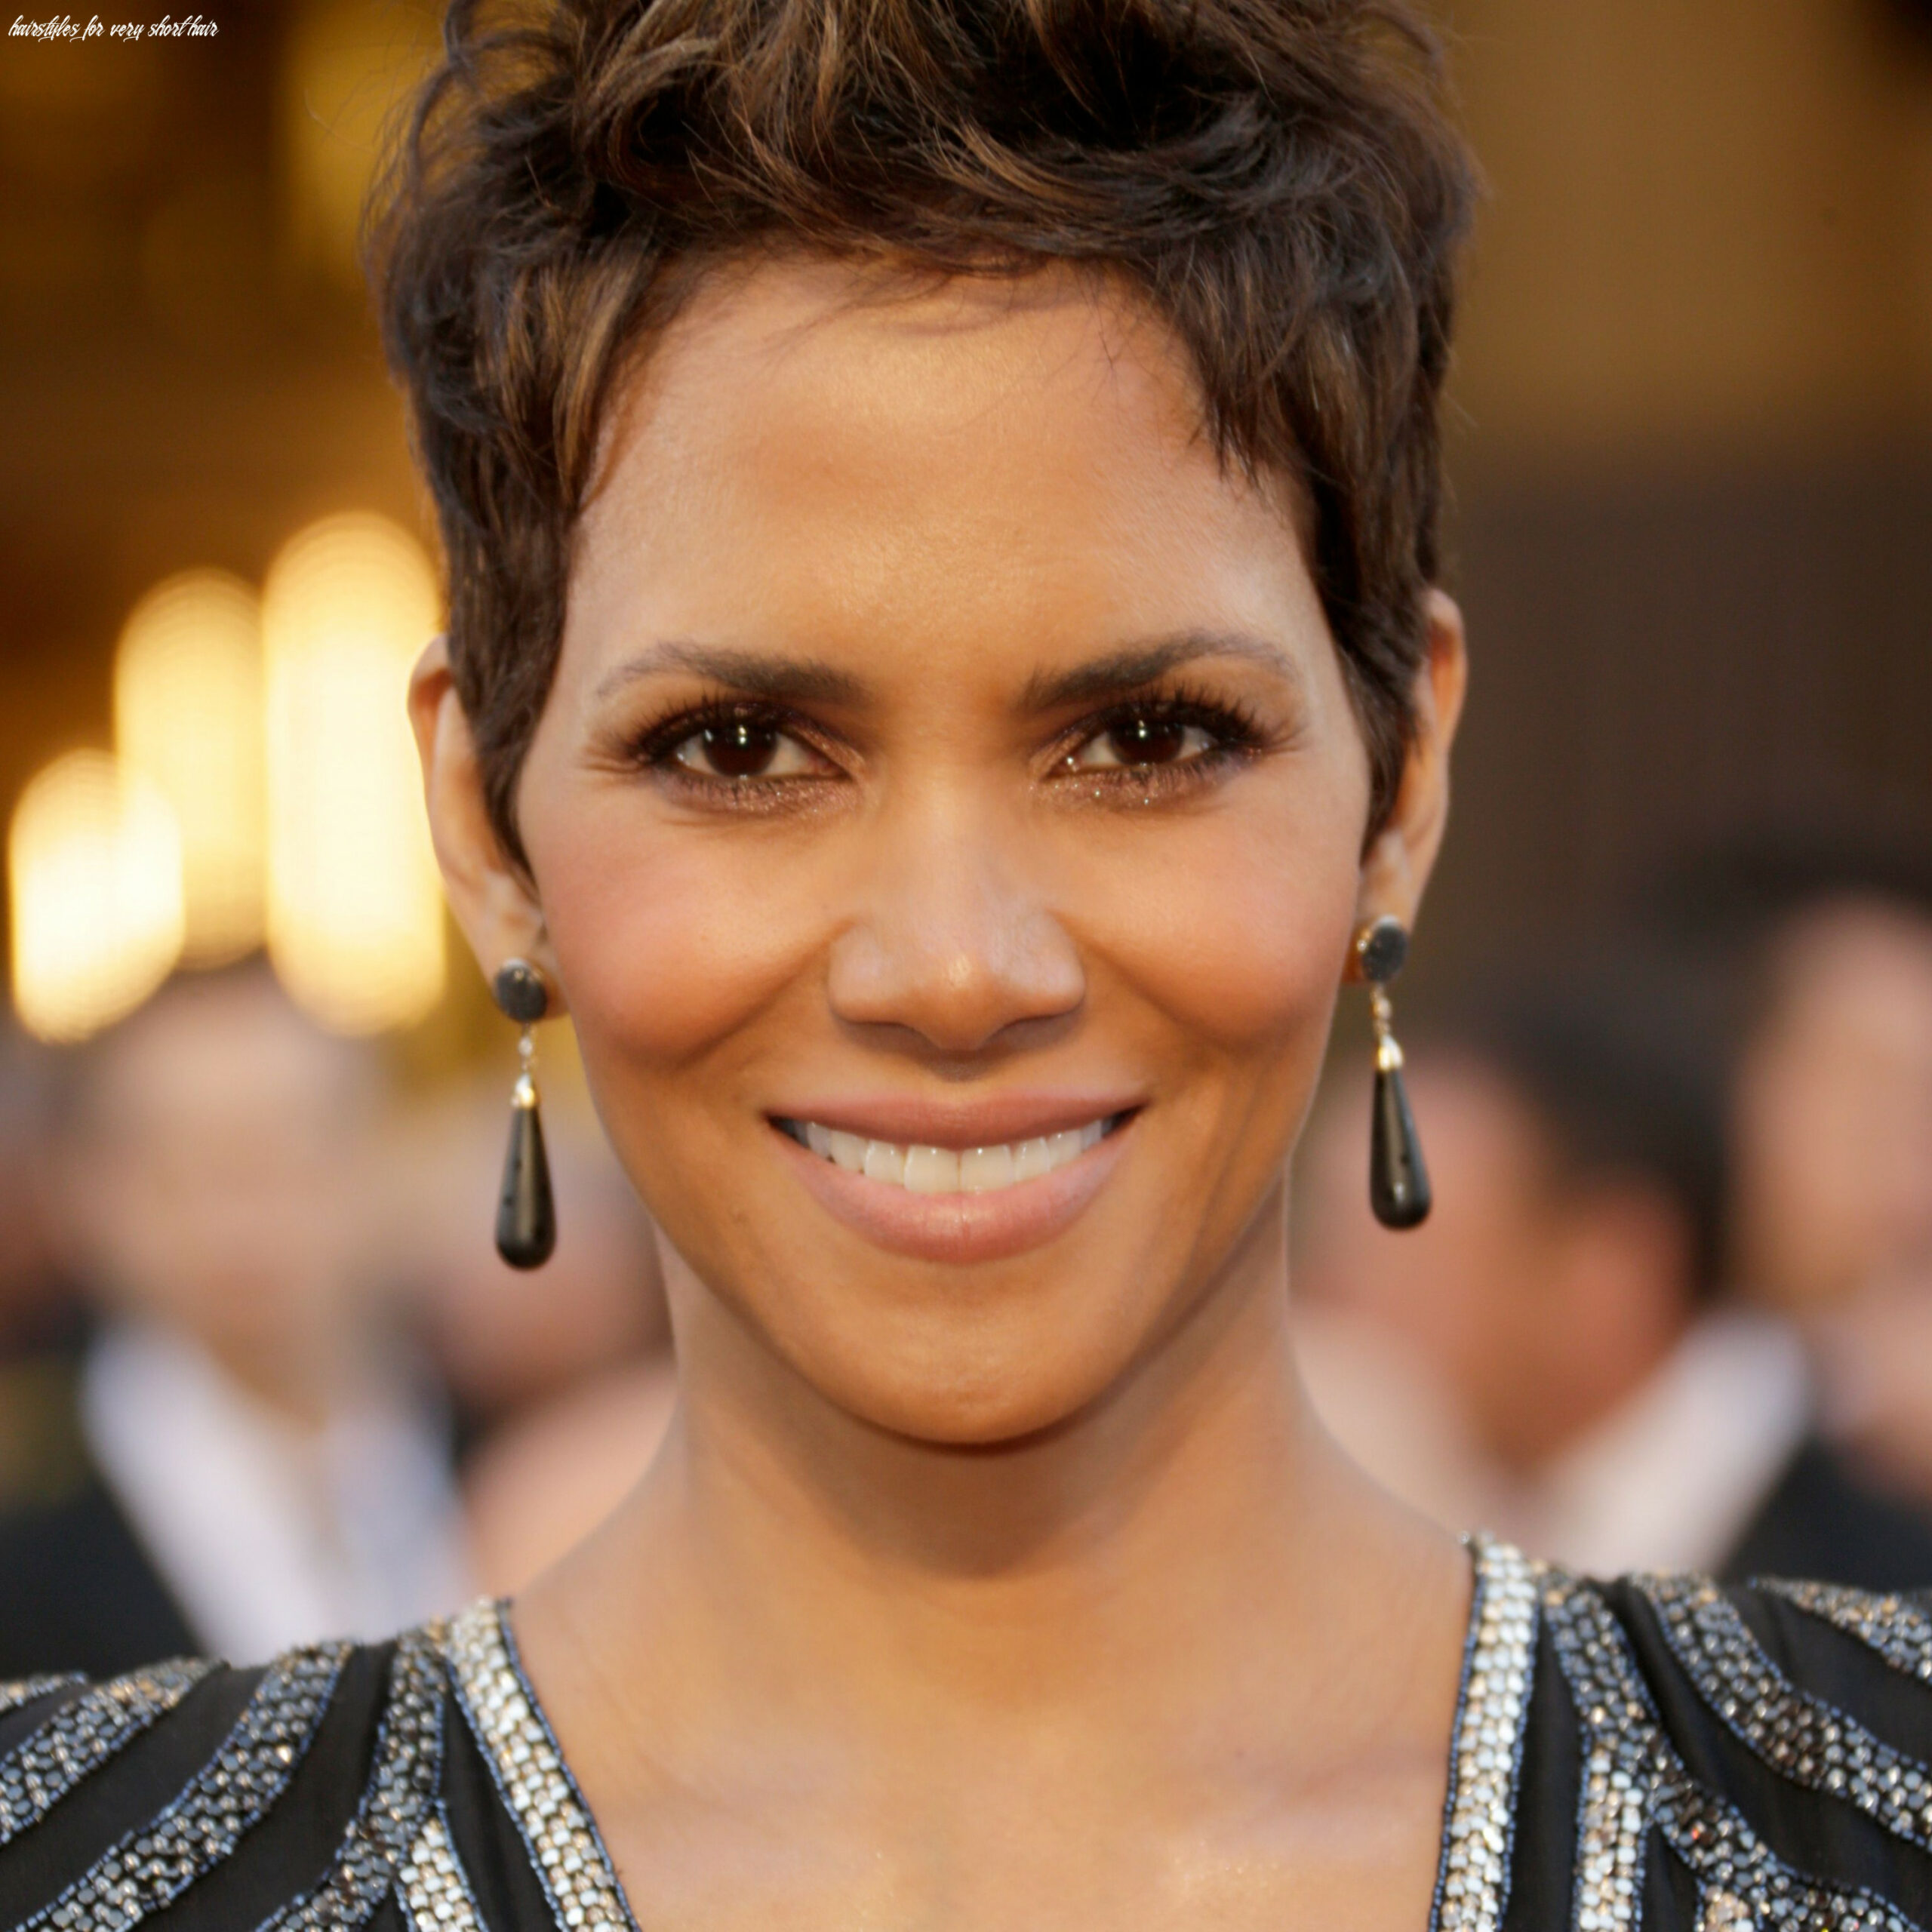 12 classic and cool short hairstyles for older women hairstyles for very short hair